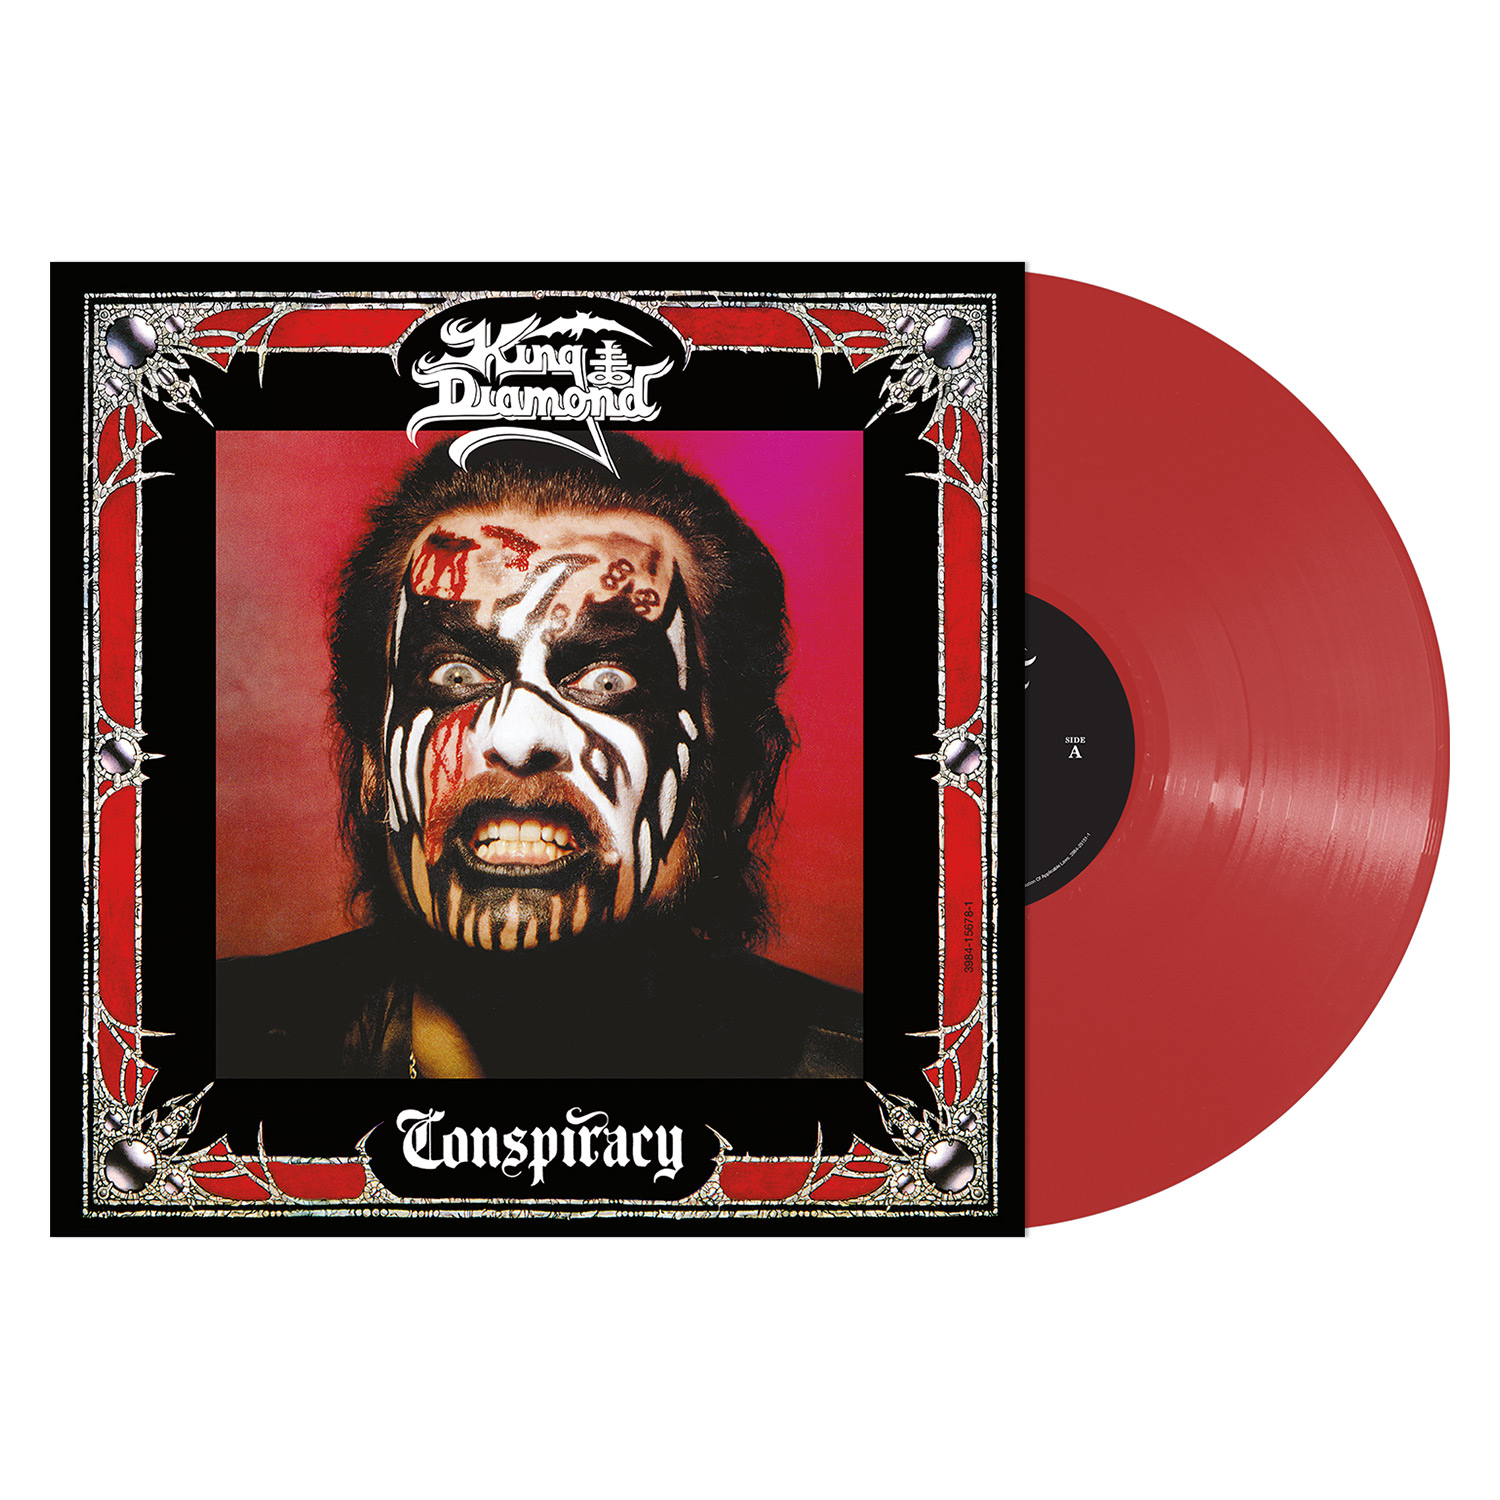 Conspiracy (Ruby Red Vinyl)